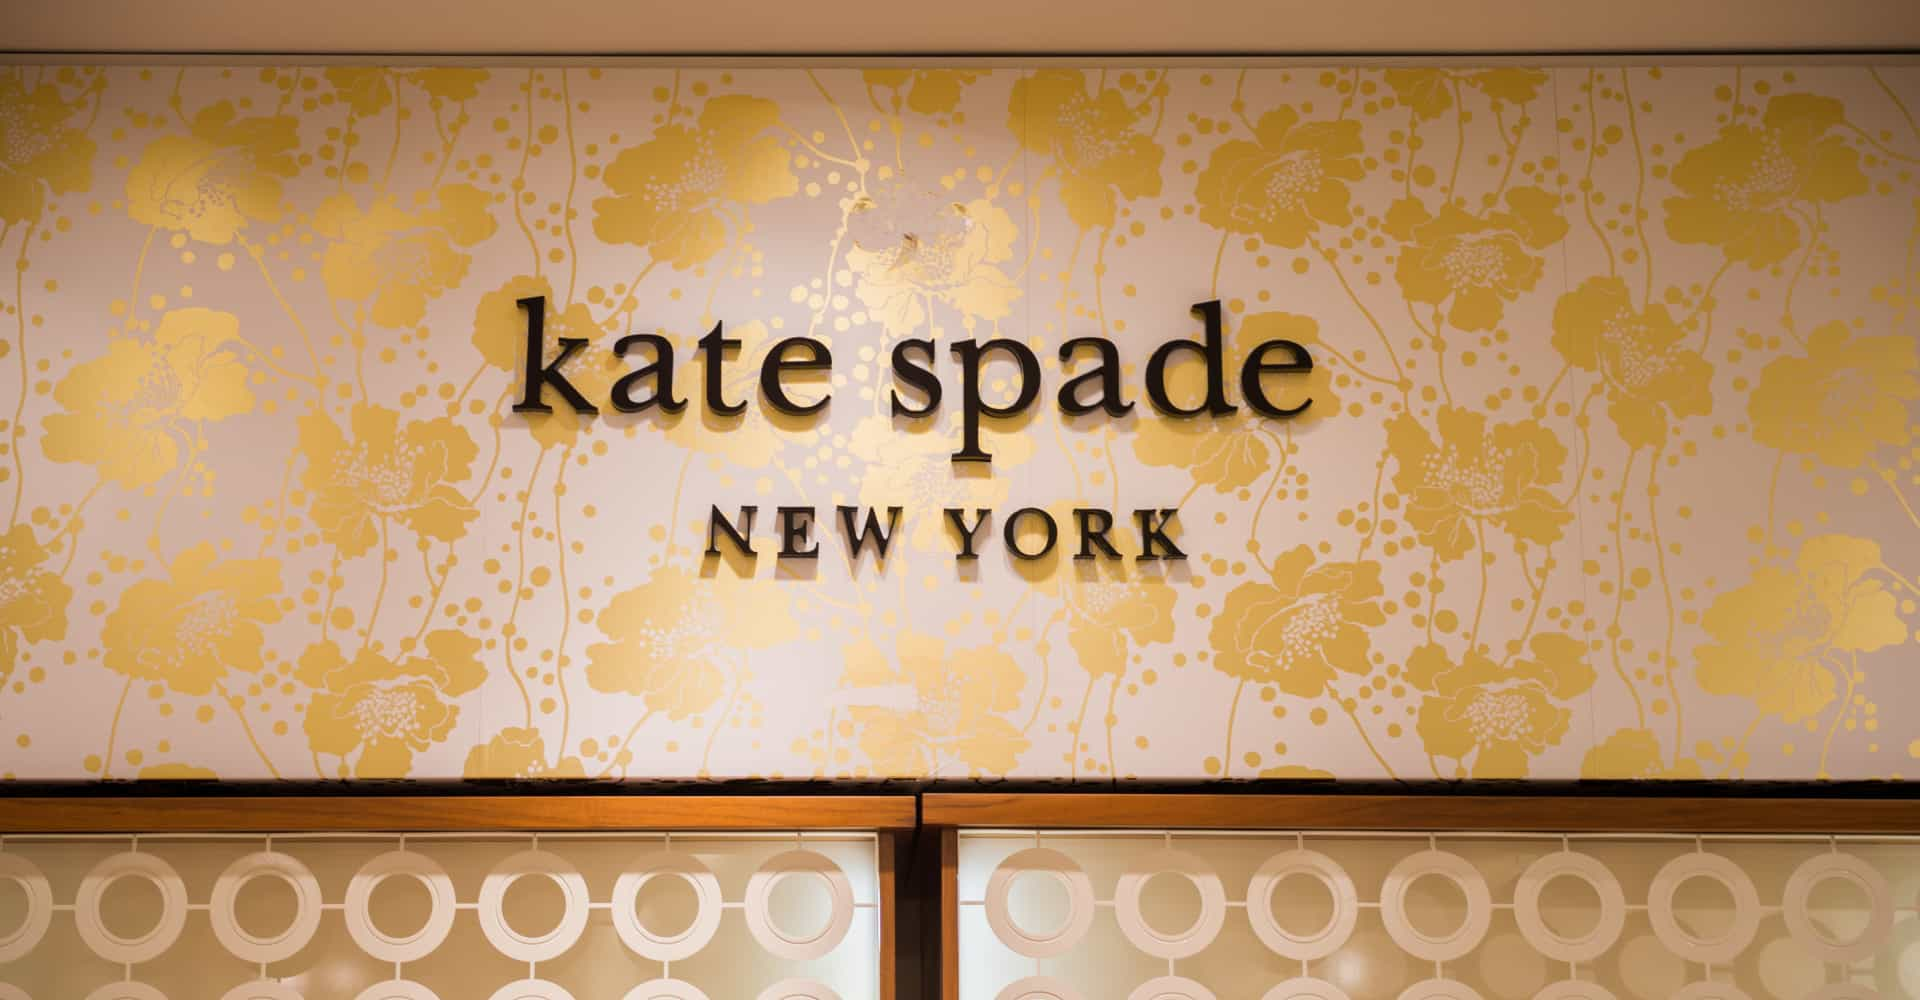 Kate Spade's most memorable quotes